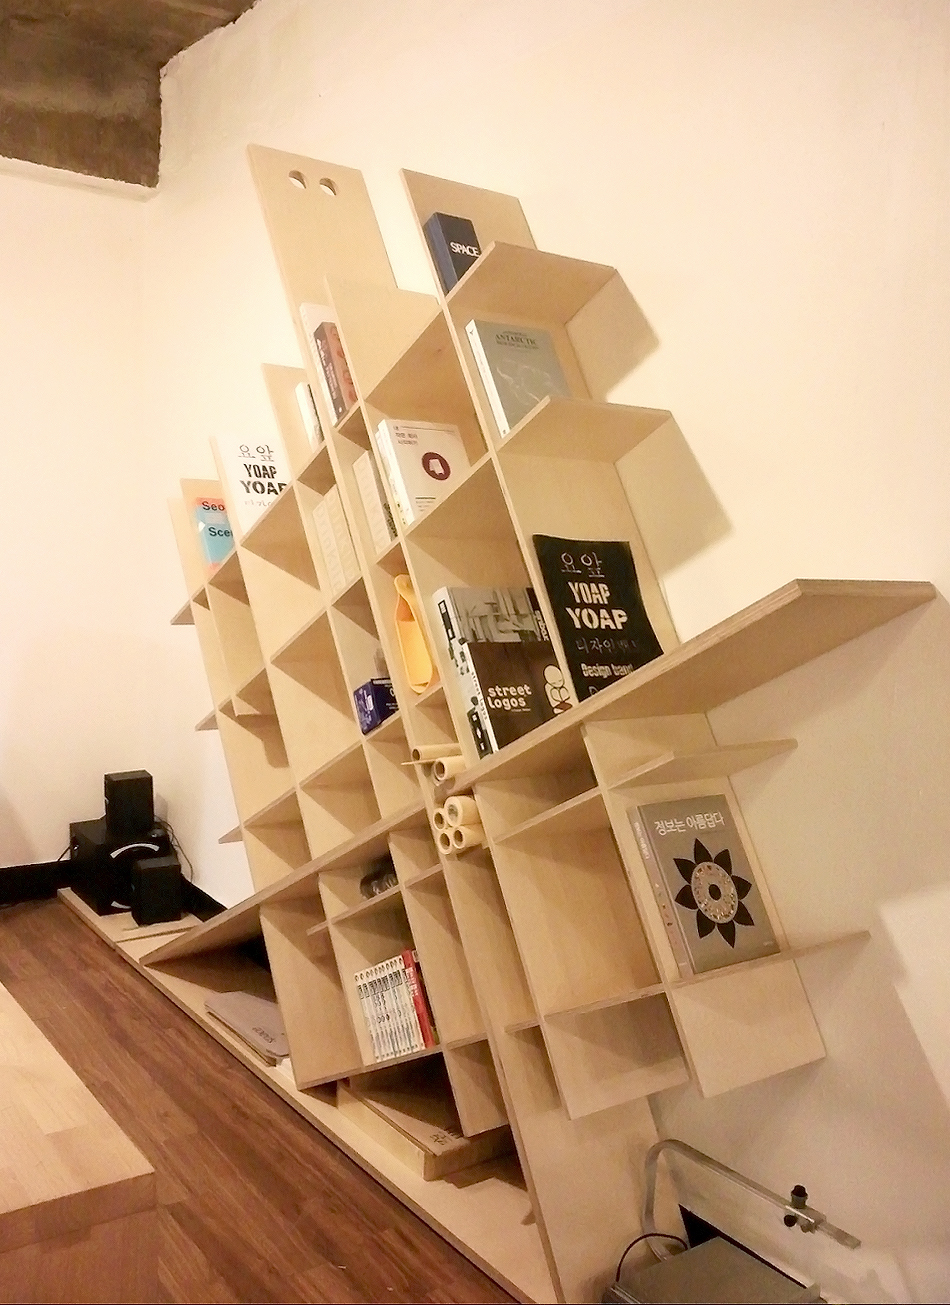 Diagonal Bookshelf Is ON SALE With Various Material Color For Further Details Please Contact Us Via Dbyoapyoapkr